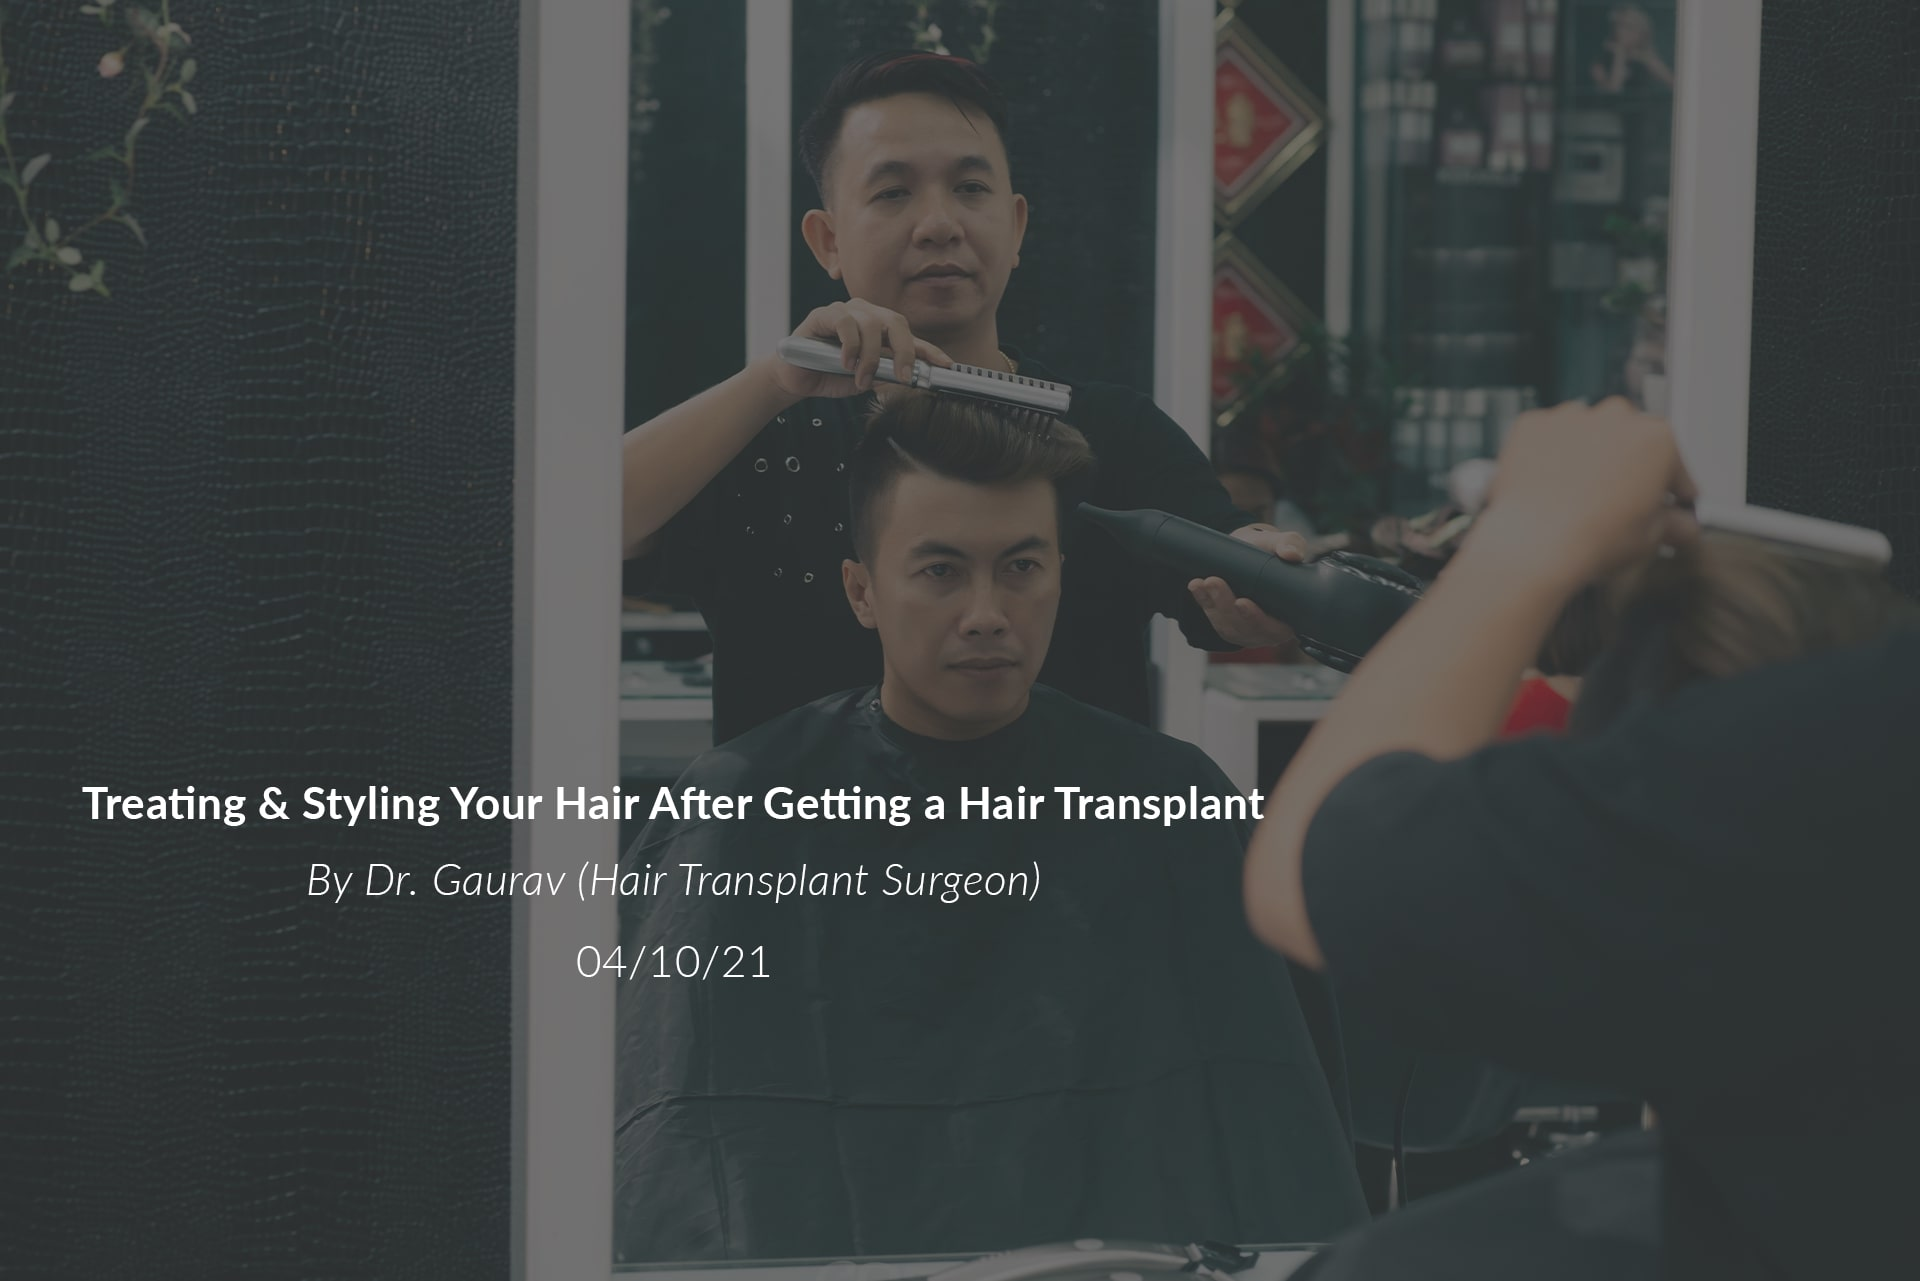 Treating & Styling Your Hair After Getting a Hair Transplant